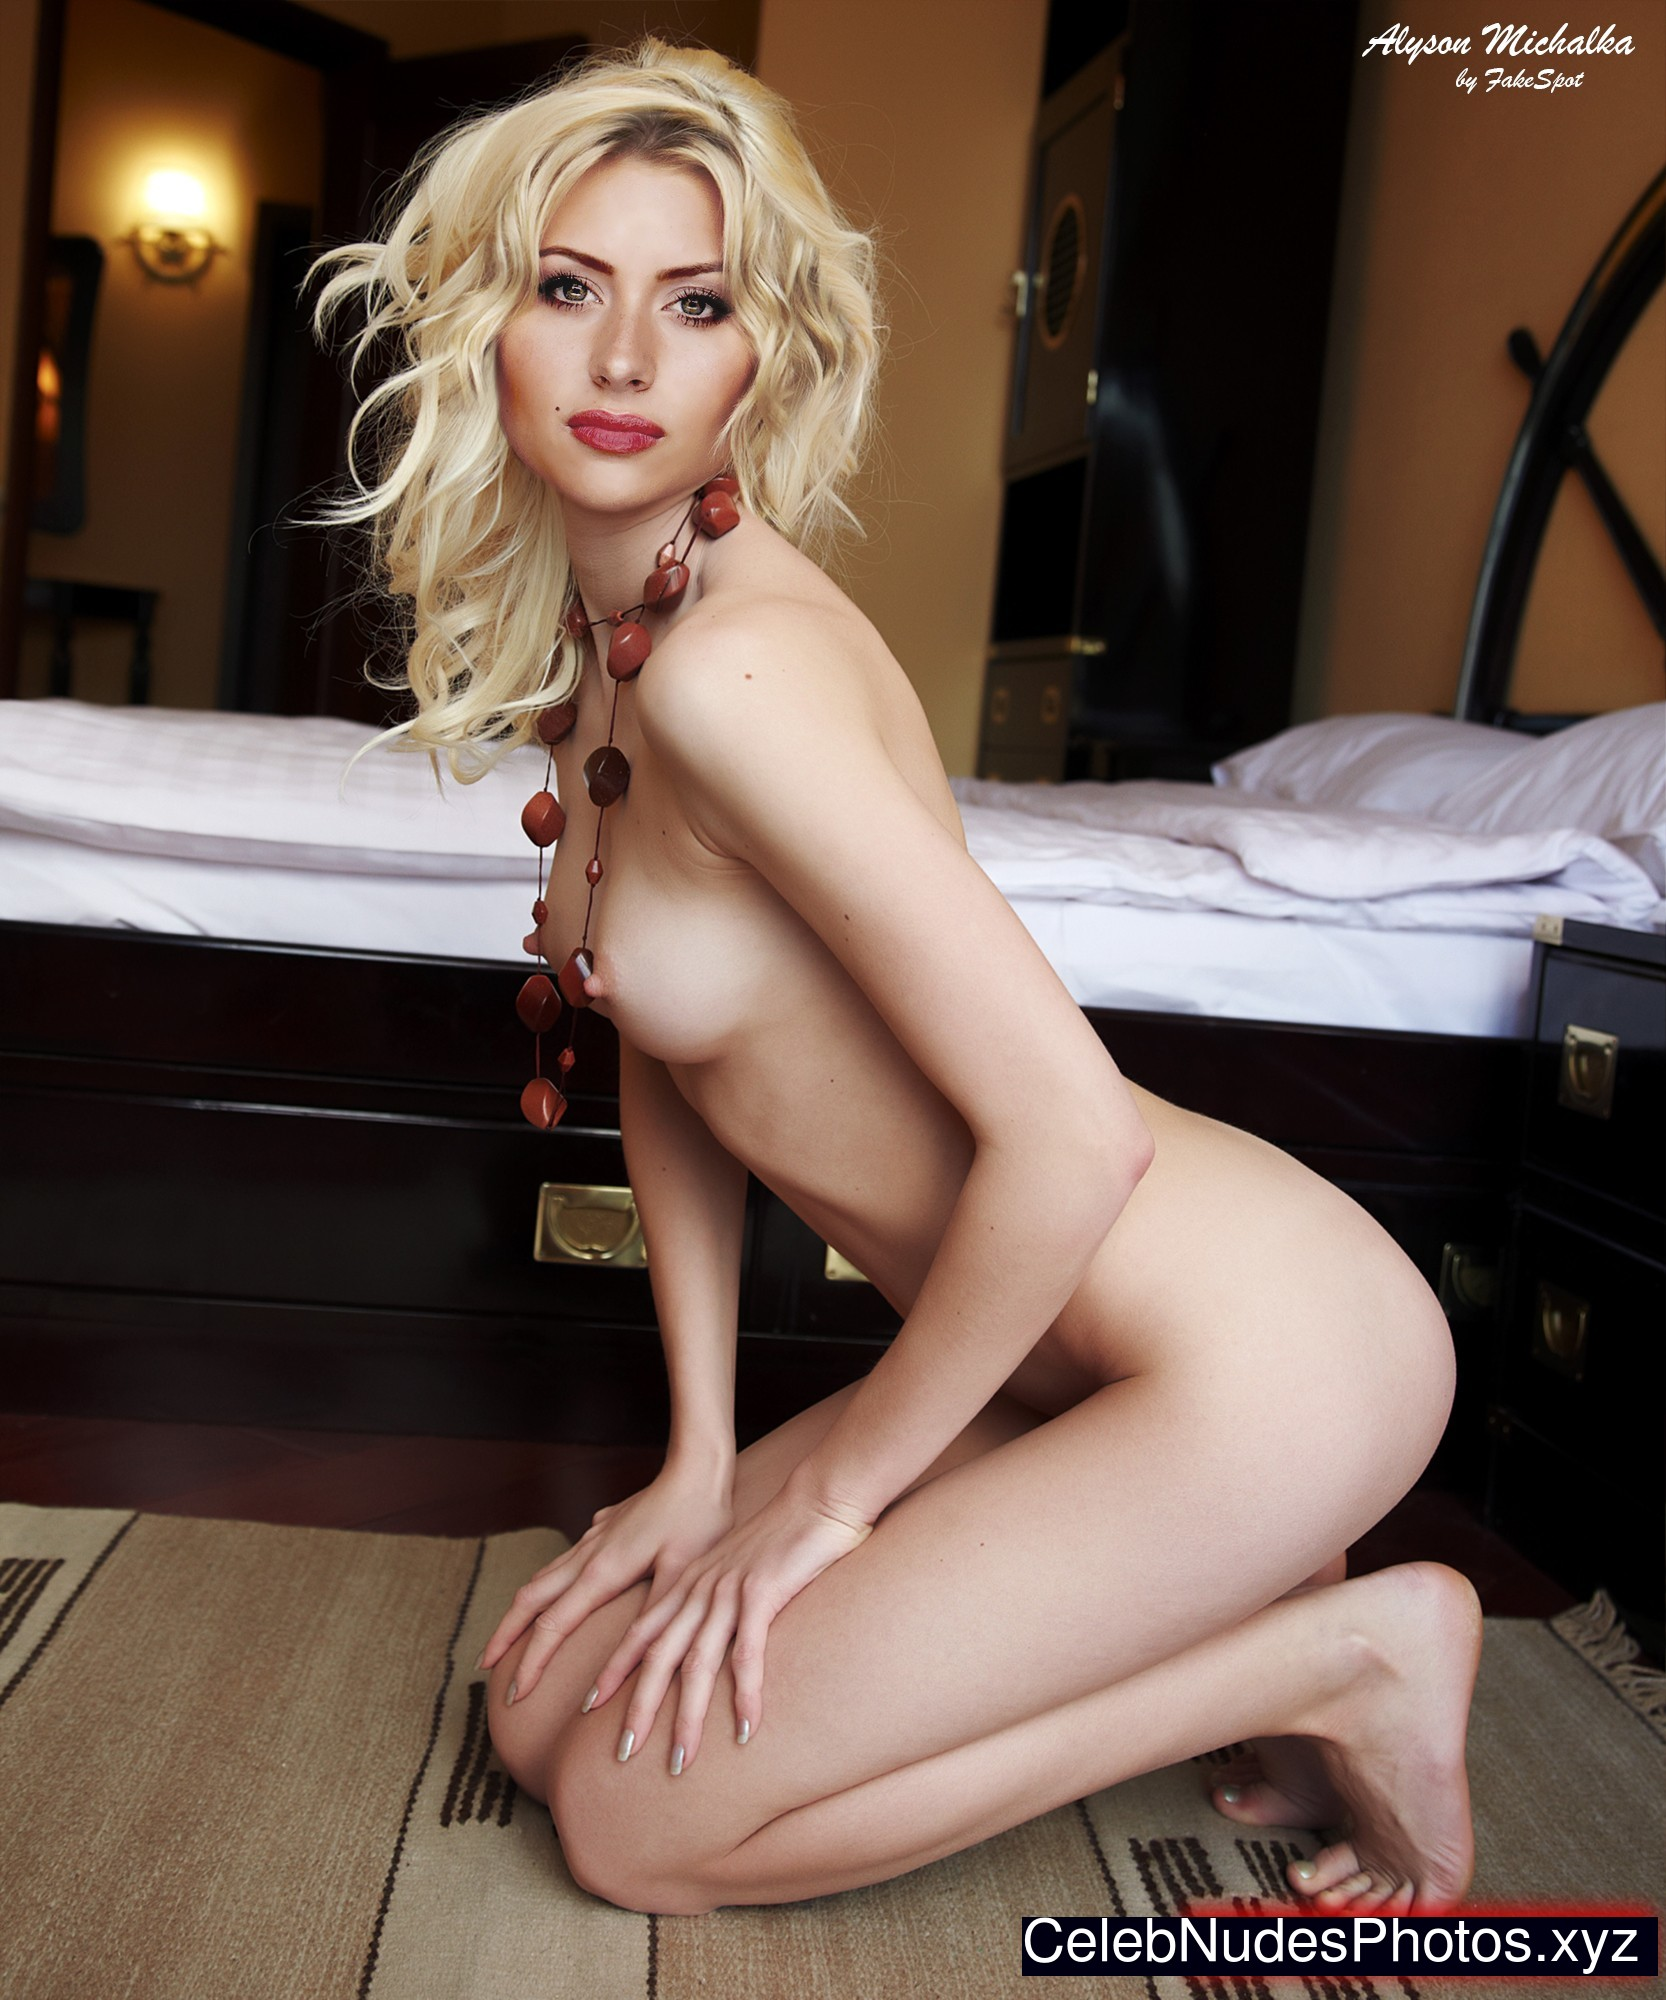 from Finn imogen poots porn fakes